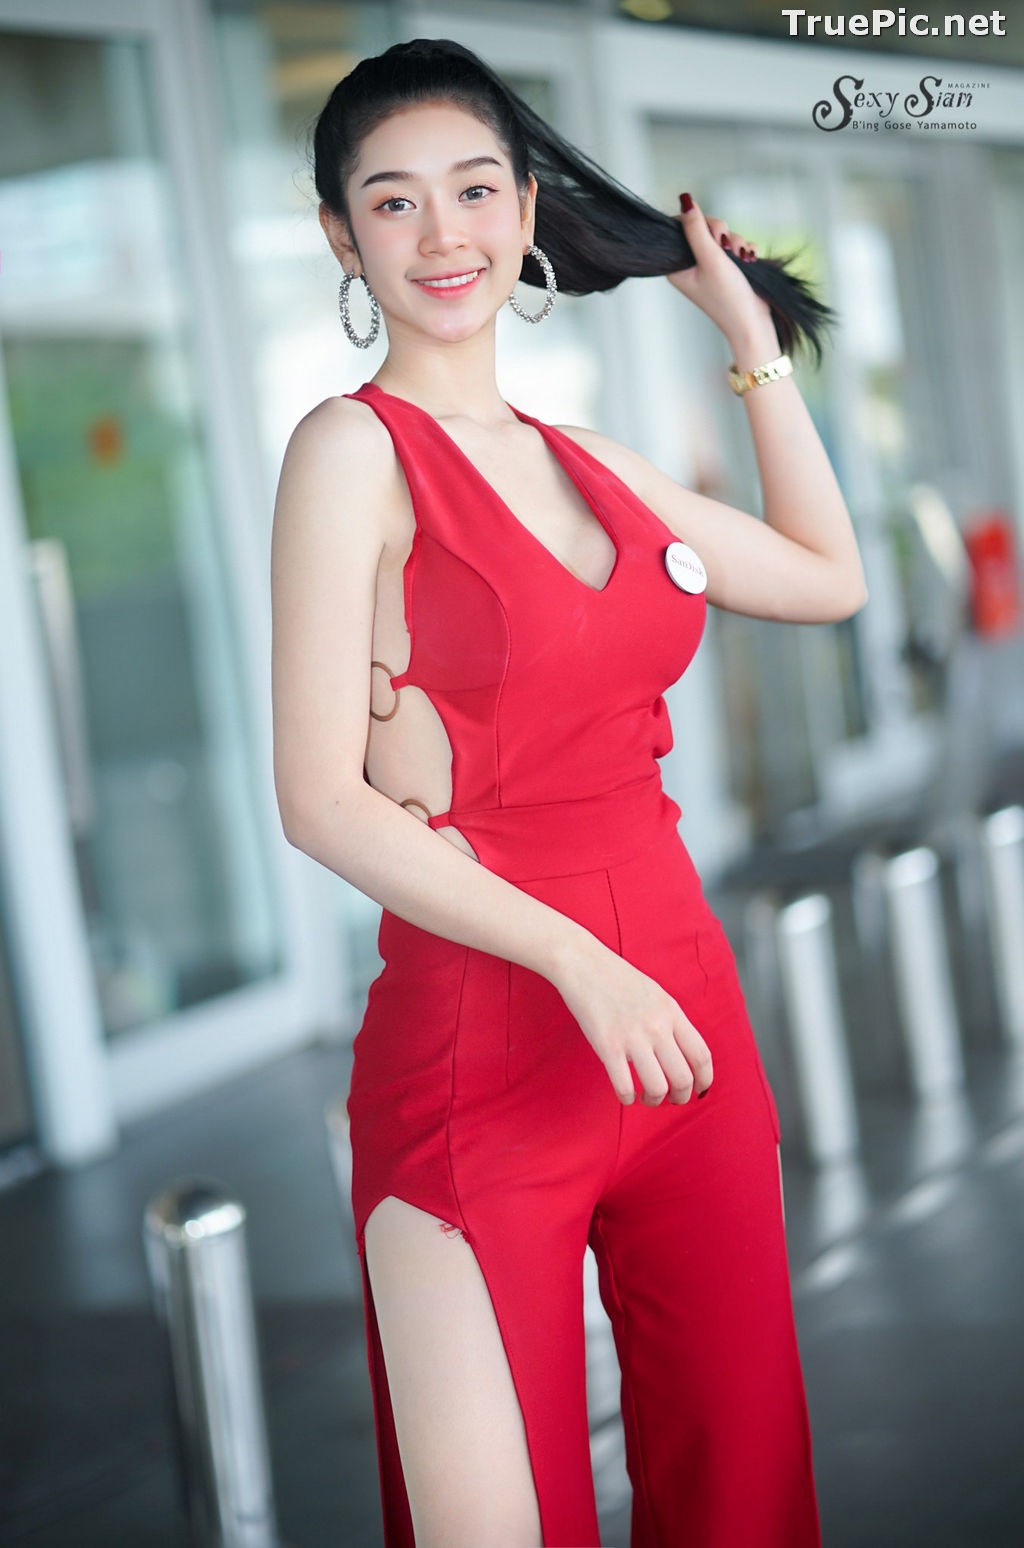 Image Thailand Model - วรารัตน์ มงคลทรง - From Red To Heart - TruePic.net - Picture-10